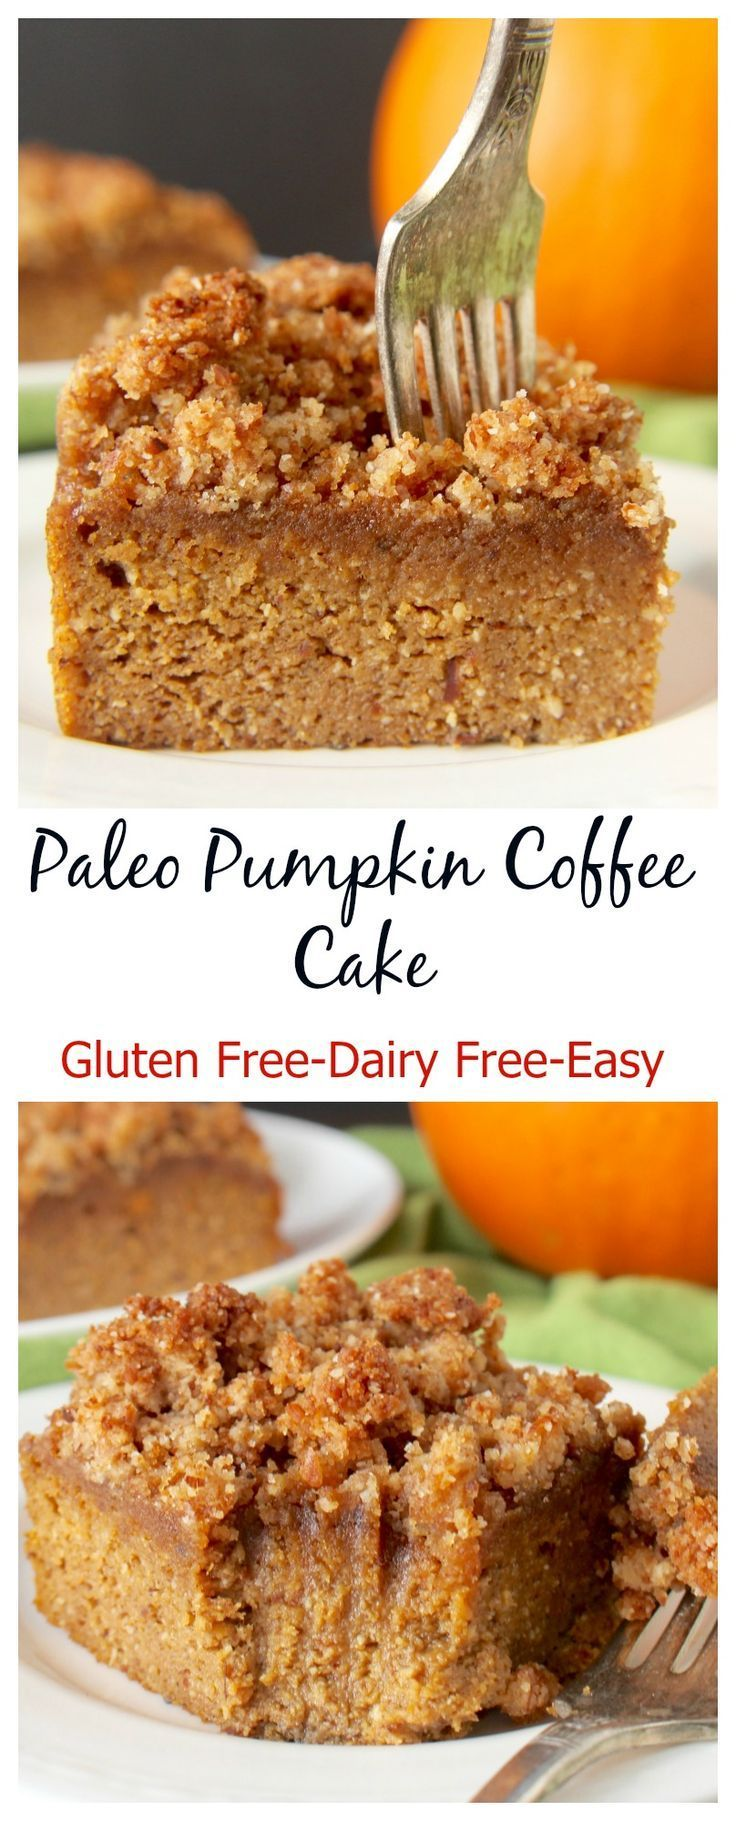 Paleo Pumpkin Coffee Cake - Jay's Baking Me Crazy Paleo Pumpkin Coffee Cake- easy, healthy, and delicious! Gluten free, grain free, and dairy free.